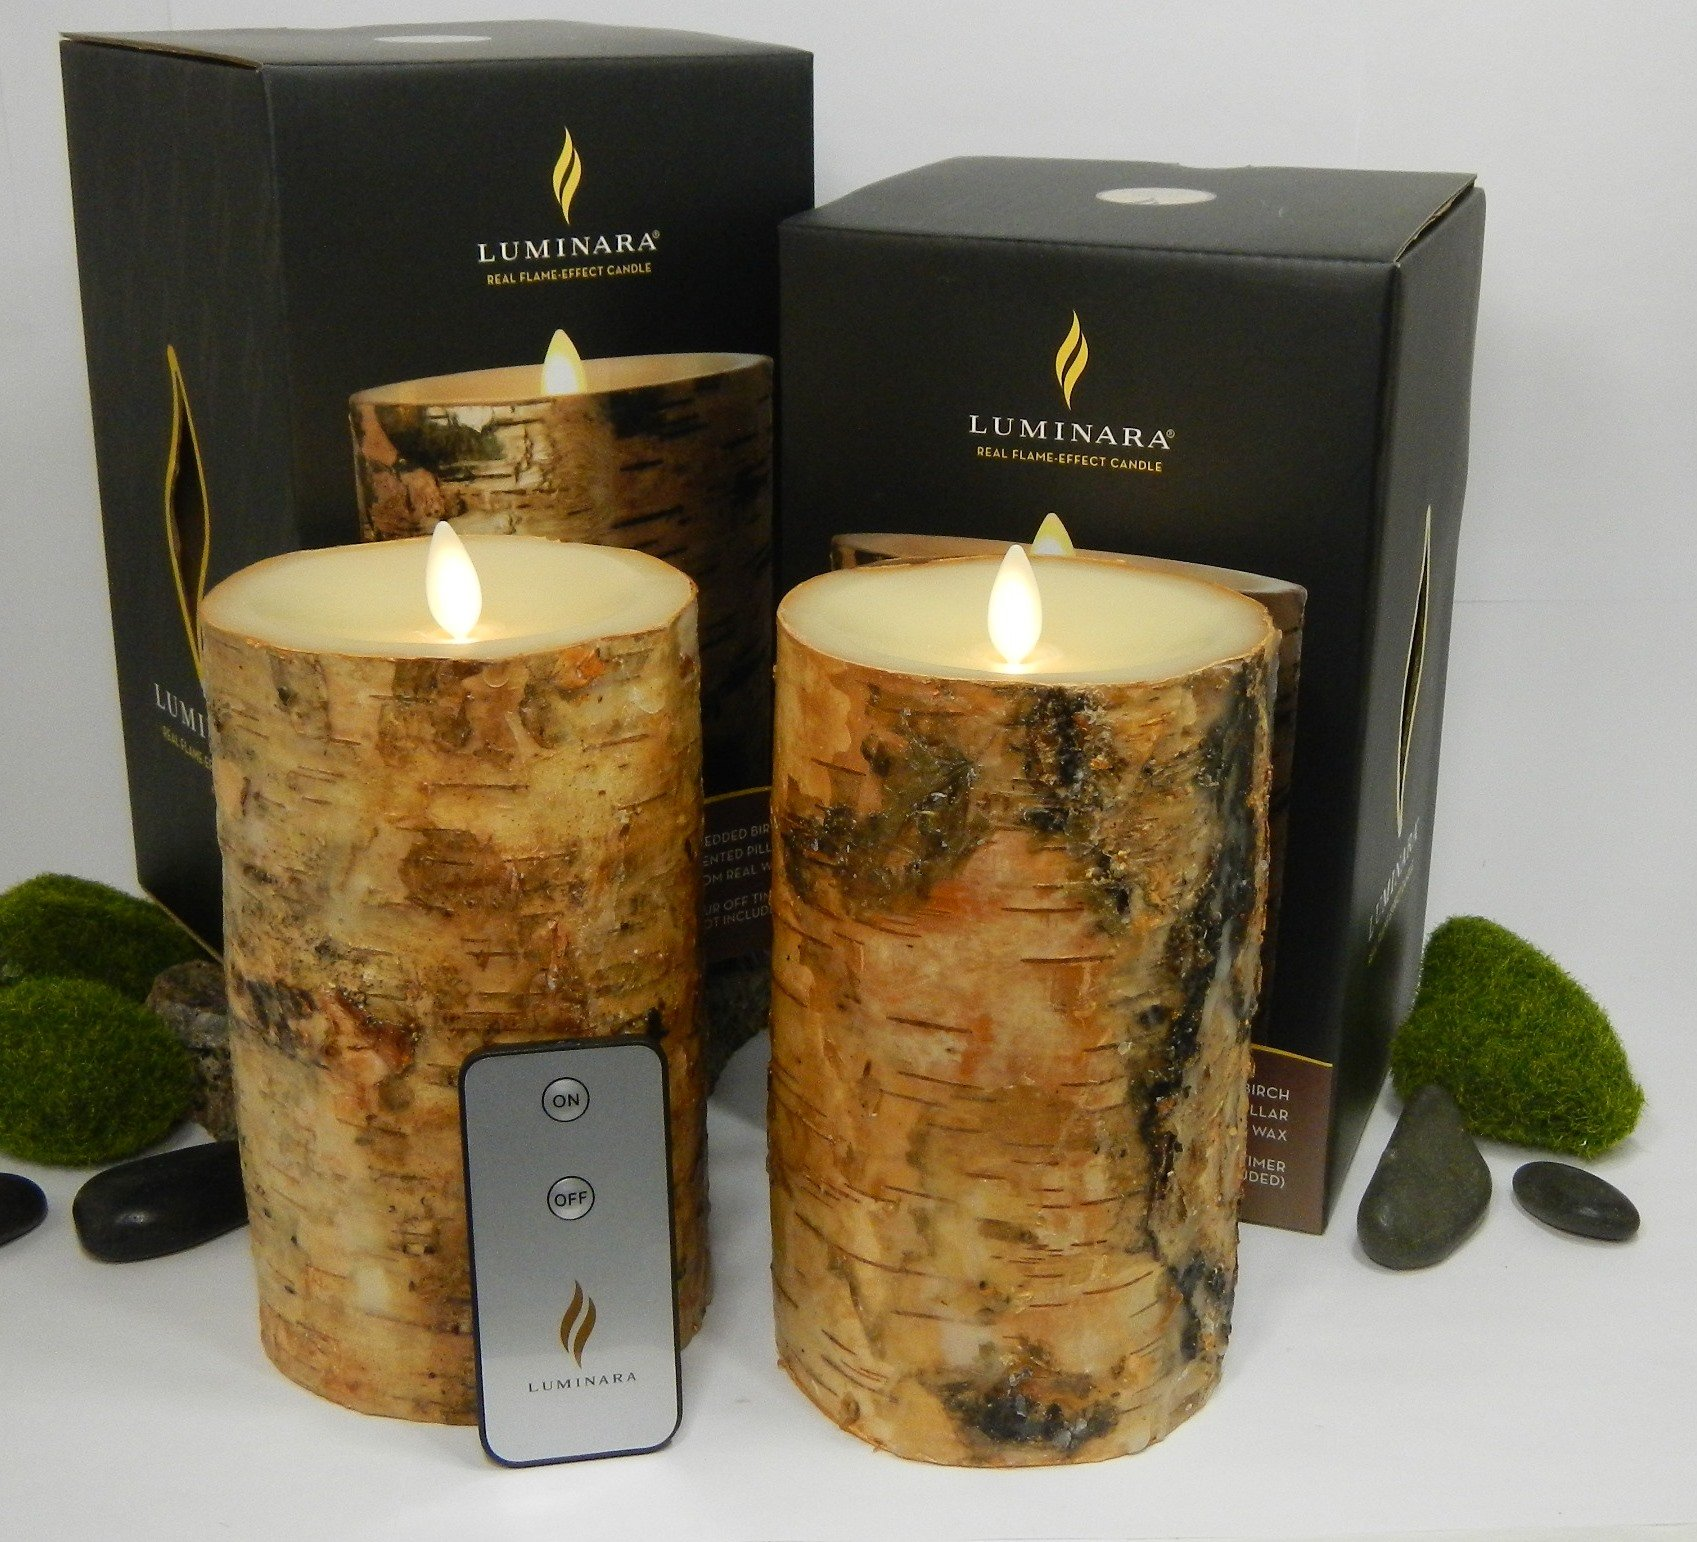 Luminara BIRCH BARK Flameless Candle 7'' Inch Pillars: 2PC SET w/ REMOTE CONTROL - 4'' x 7'', Ivory Wax, Battery Operated, Timer | REAL BIRCH WOOD - NOT PAINT | Home, Bed & Bath, Natural, Wedding, Gift by Luminara